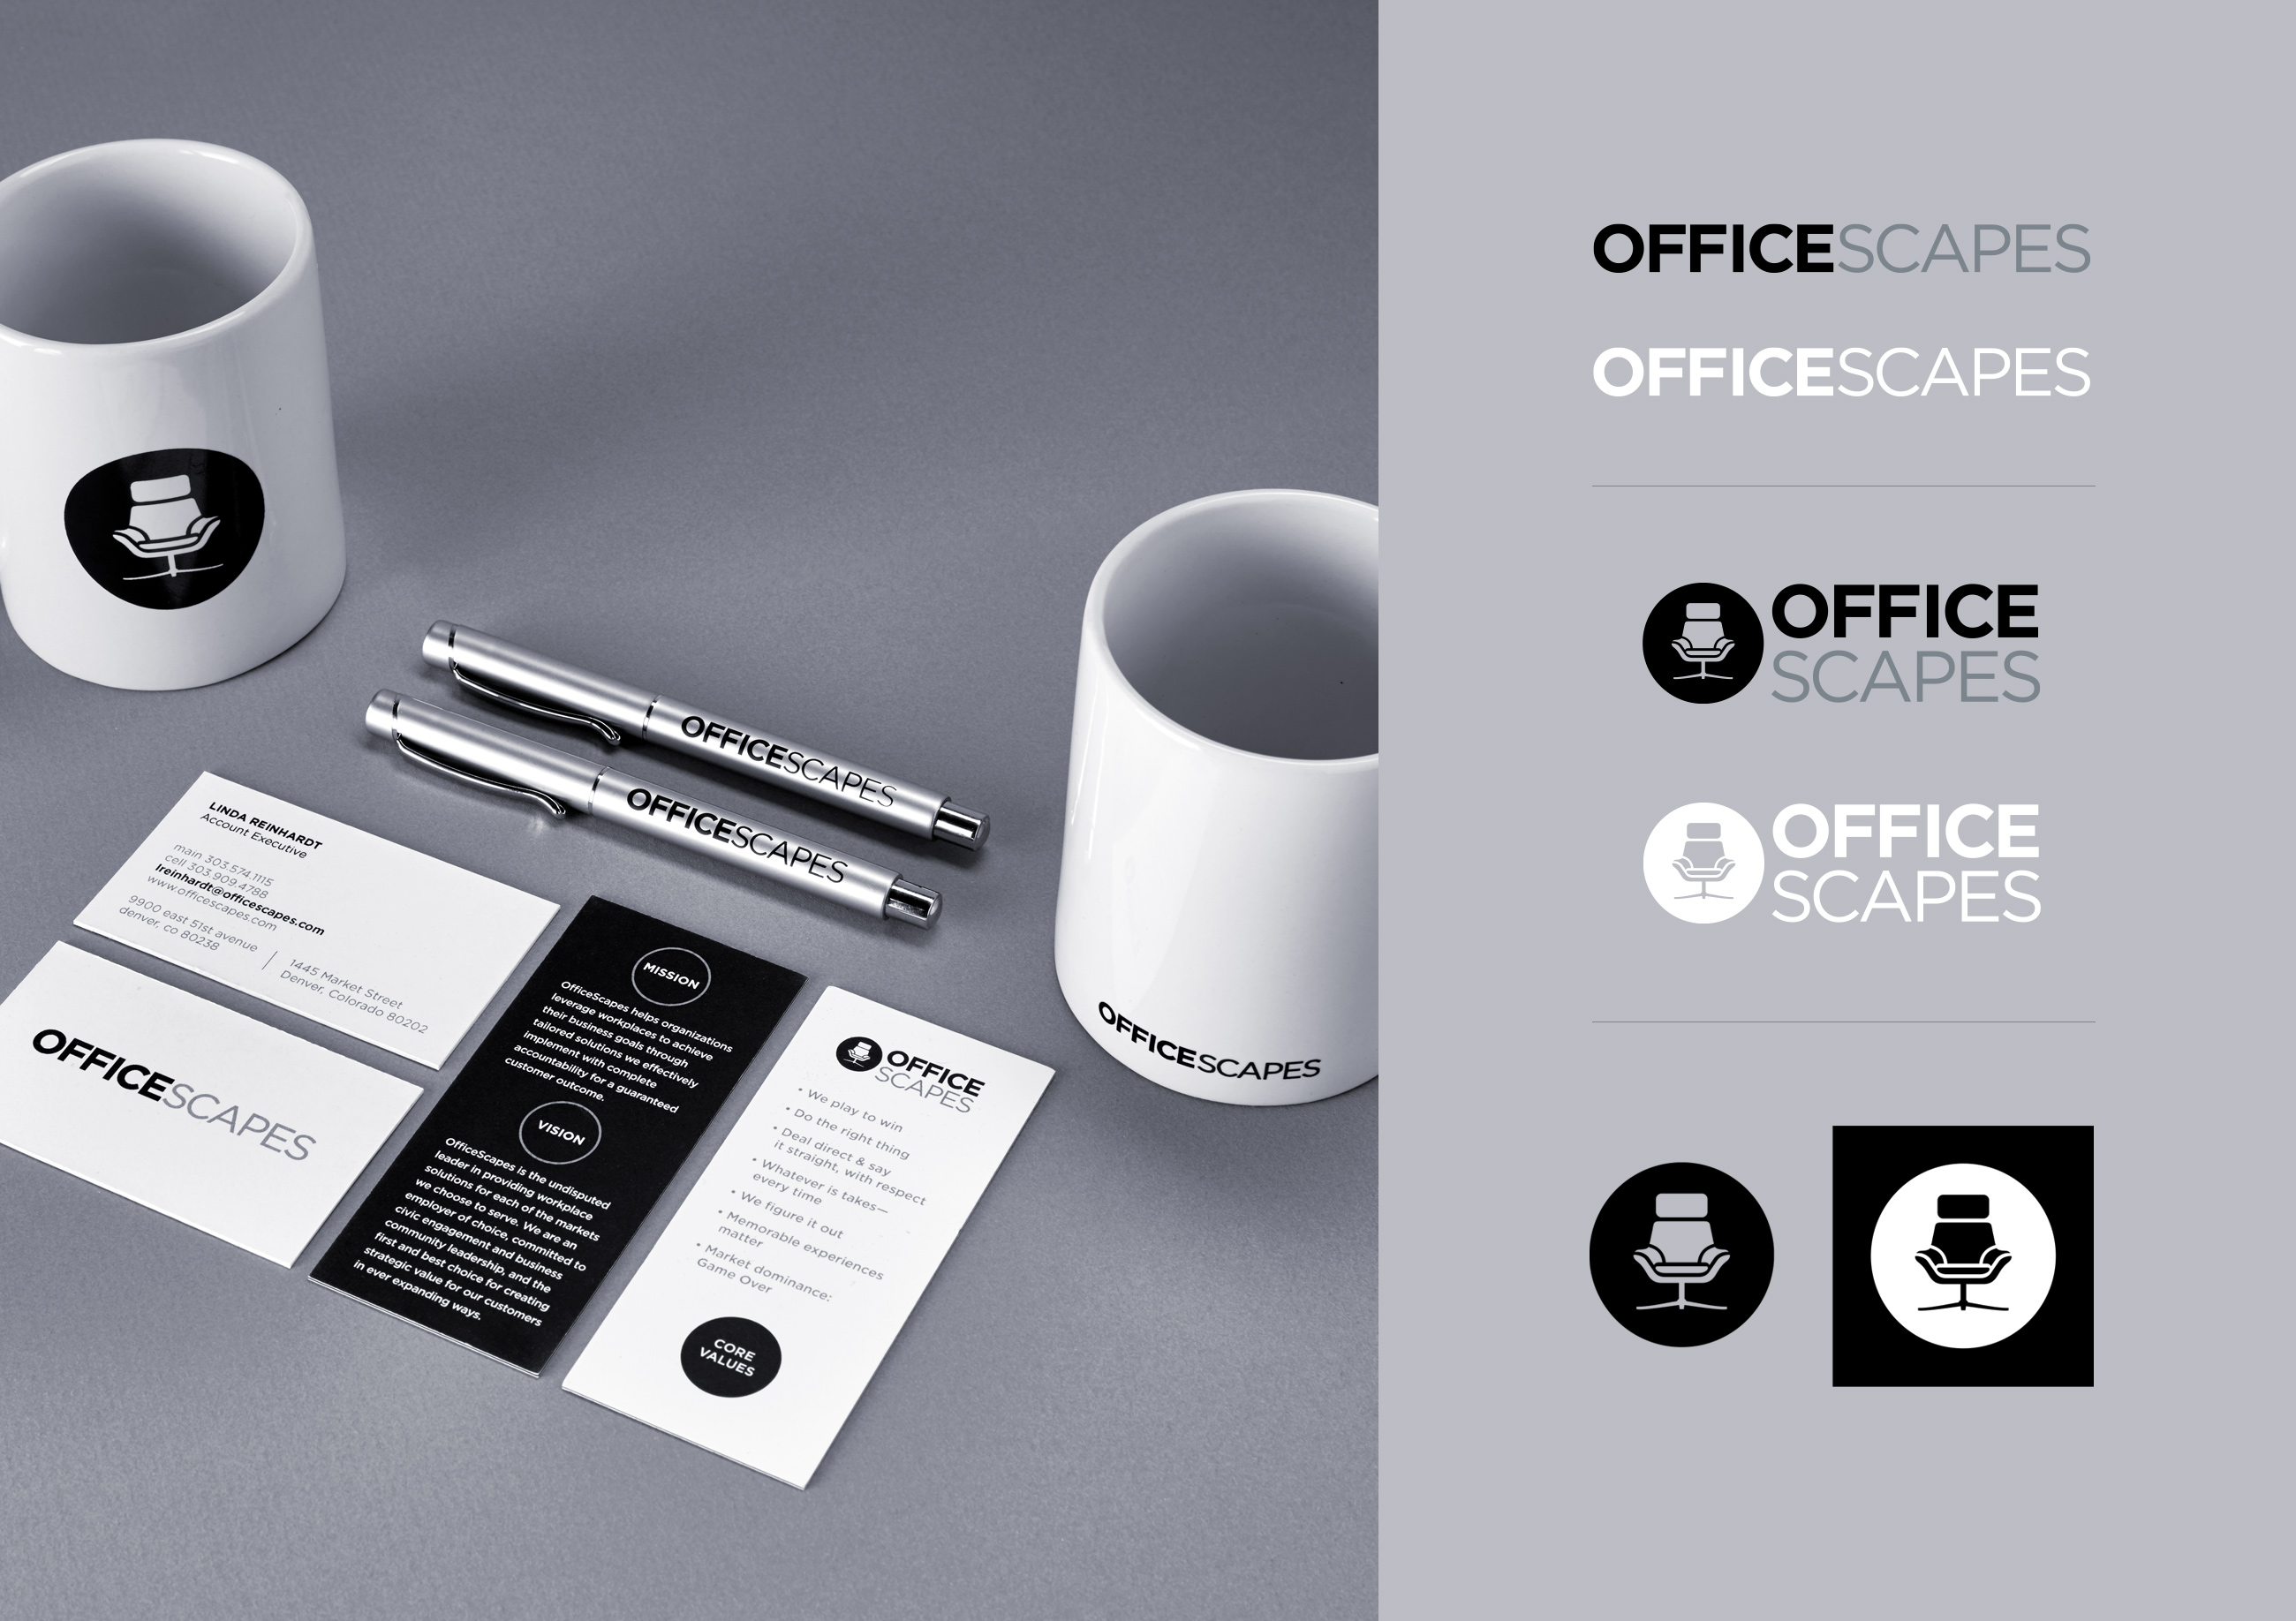 OfficeScapes-brand-items-2600x1836px